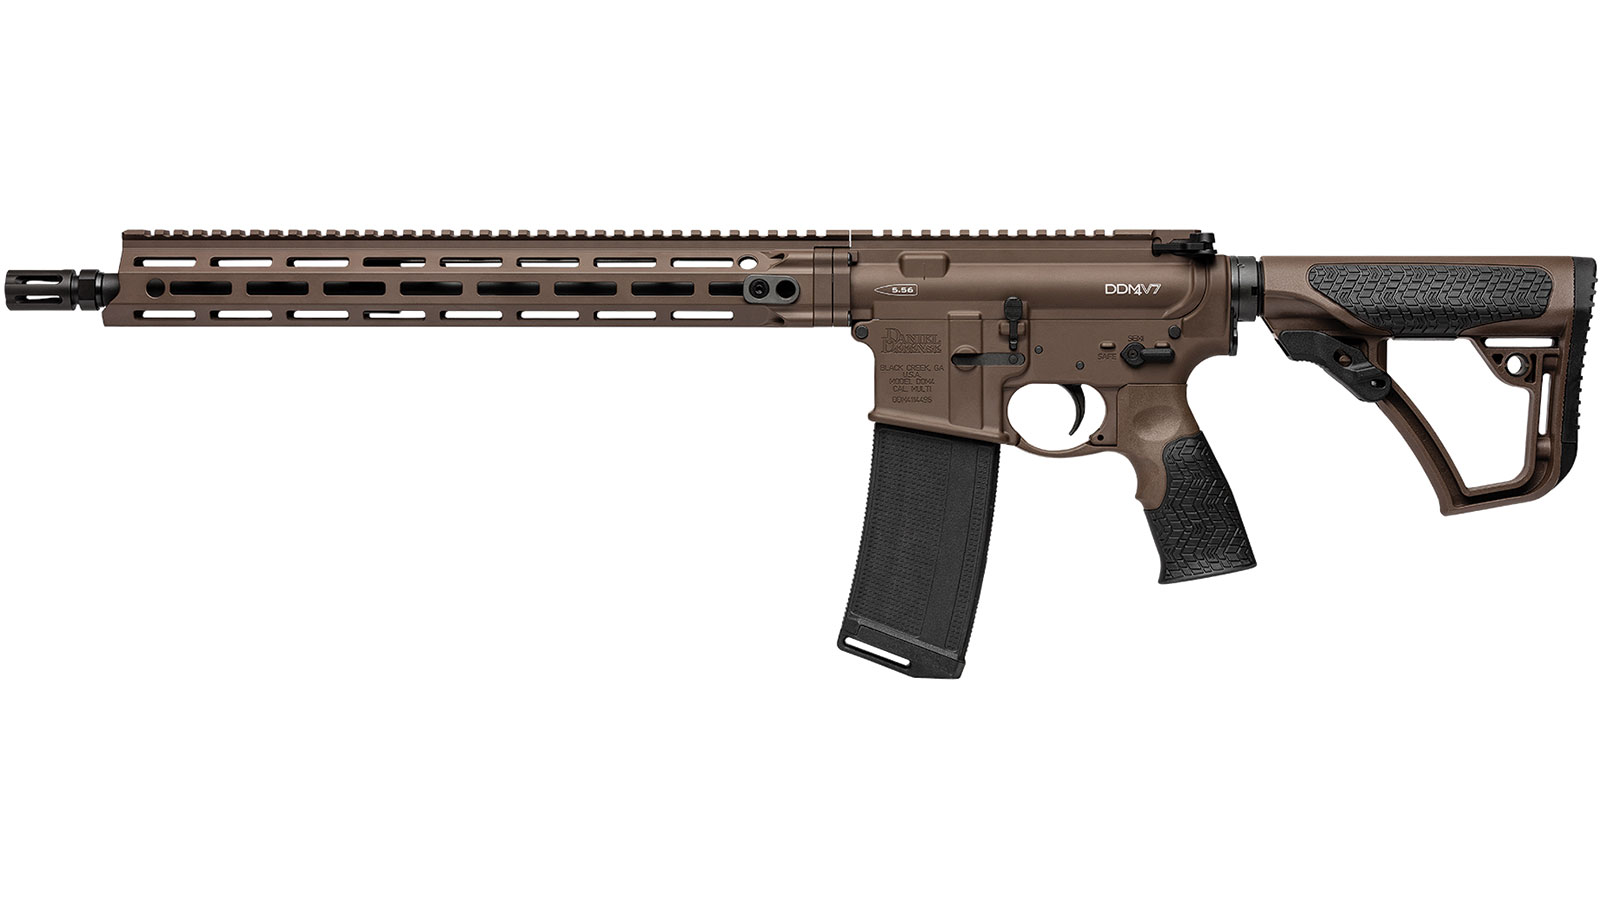 Daniel Defense 02338047 DDM4 V7 Semi-Automatic 223 Rem|5.56 NATO 16 30+1 6-Position Brown Stk Brown Cerakote in.